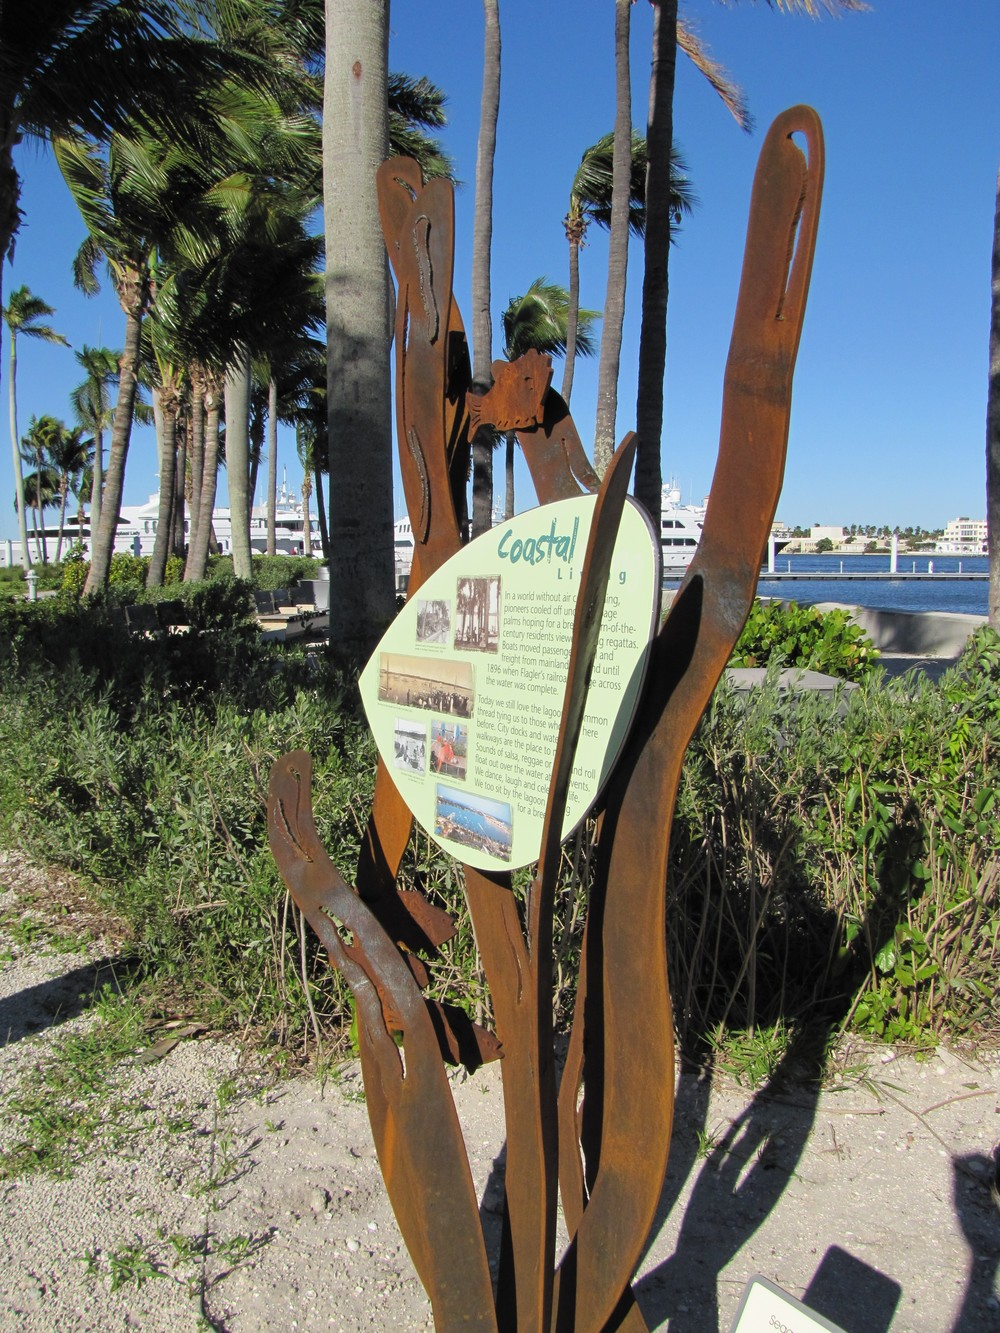 West Palm Beach Waterfront Interpretive Signage